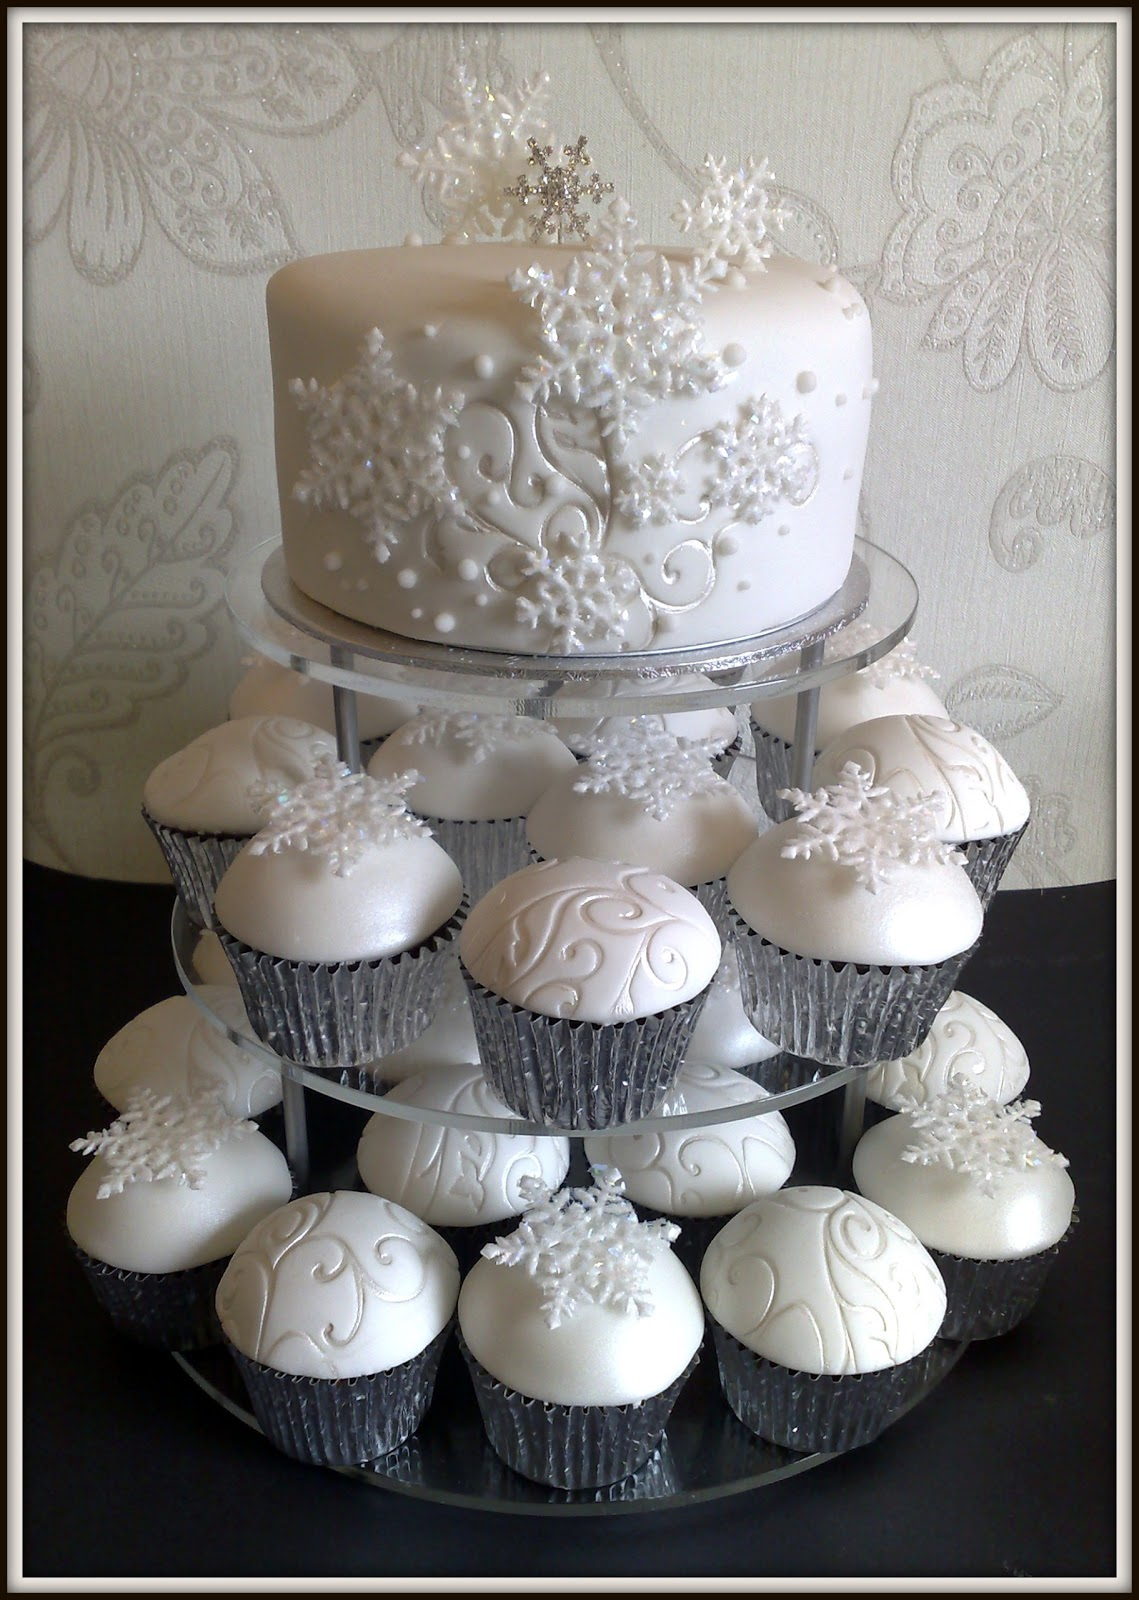 small things iced leigh josephines winter wedding cake. Black Bedroom Furniture Sets. Home Design Ideas